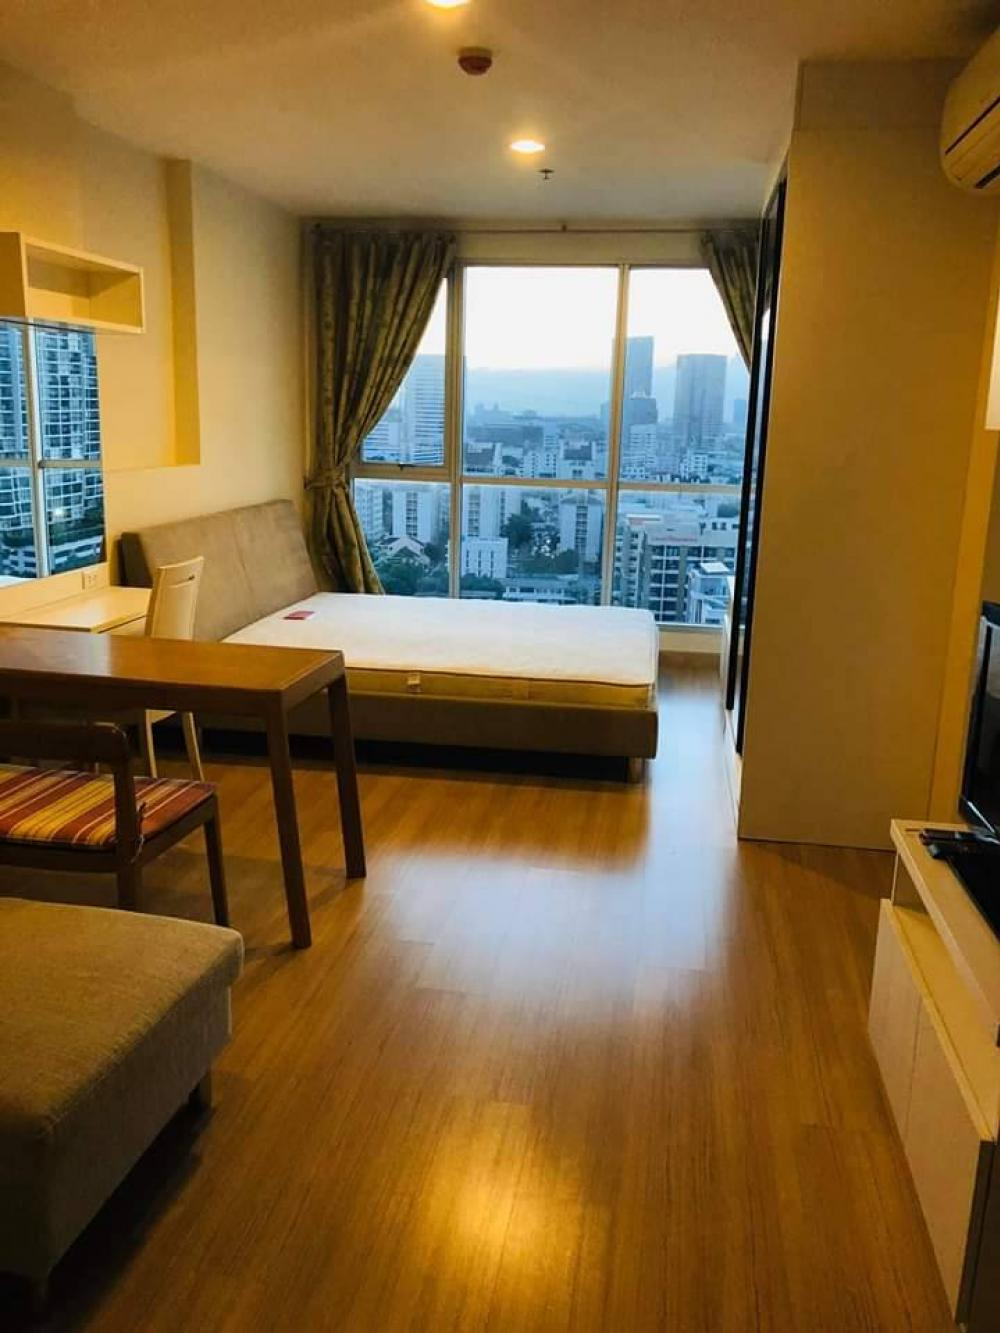 For RentCondoLadprao, Central Ladprao : life@Ladprao181 Bedroom size 35 Sqm.16th floor, Ready to move in